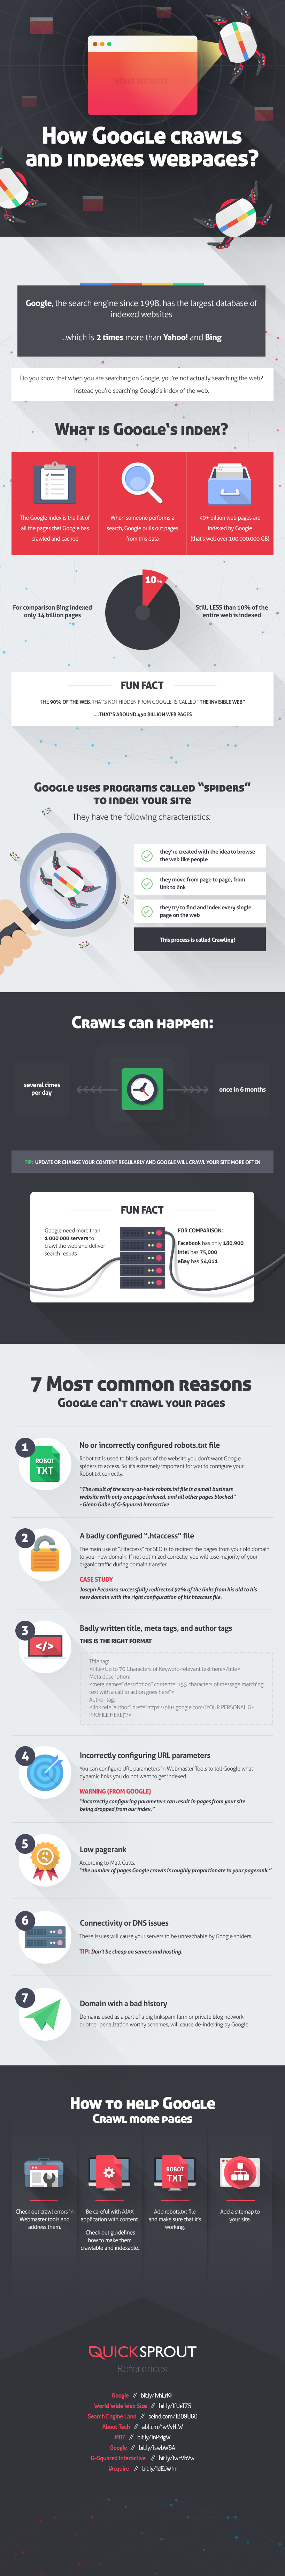 Top 7 Common Reasons Your Site isn't Ranking On Google